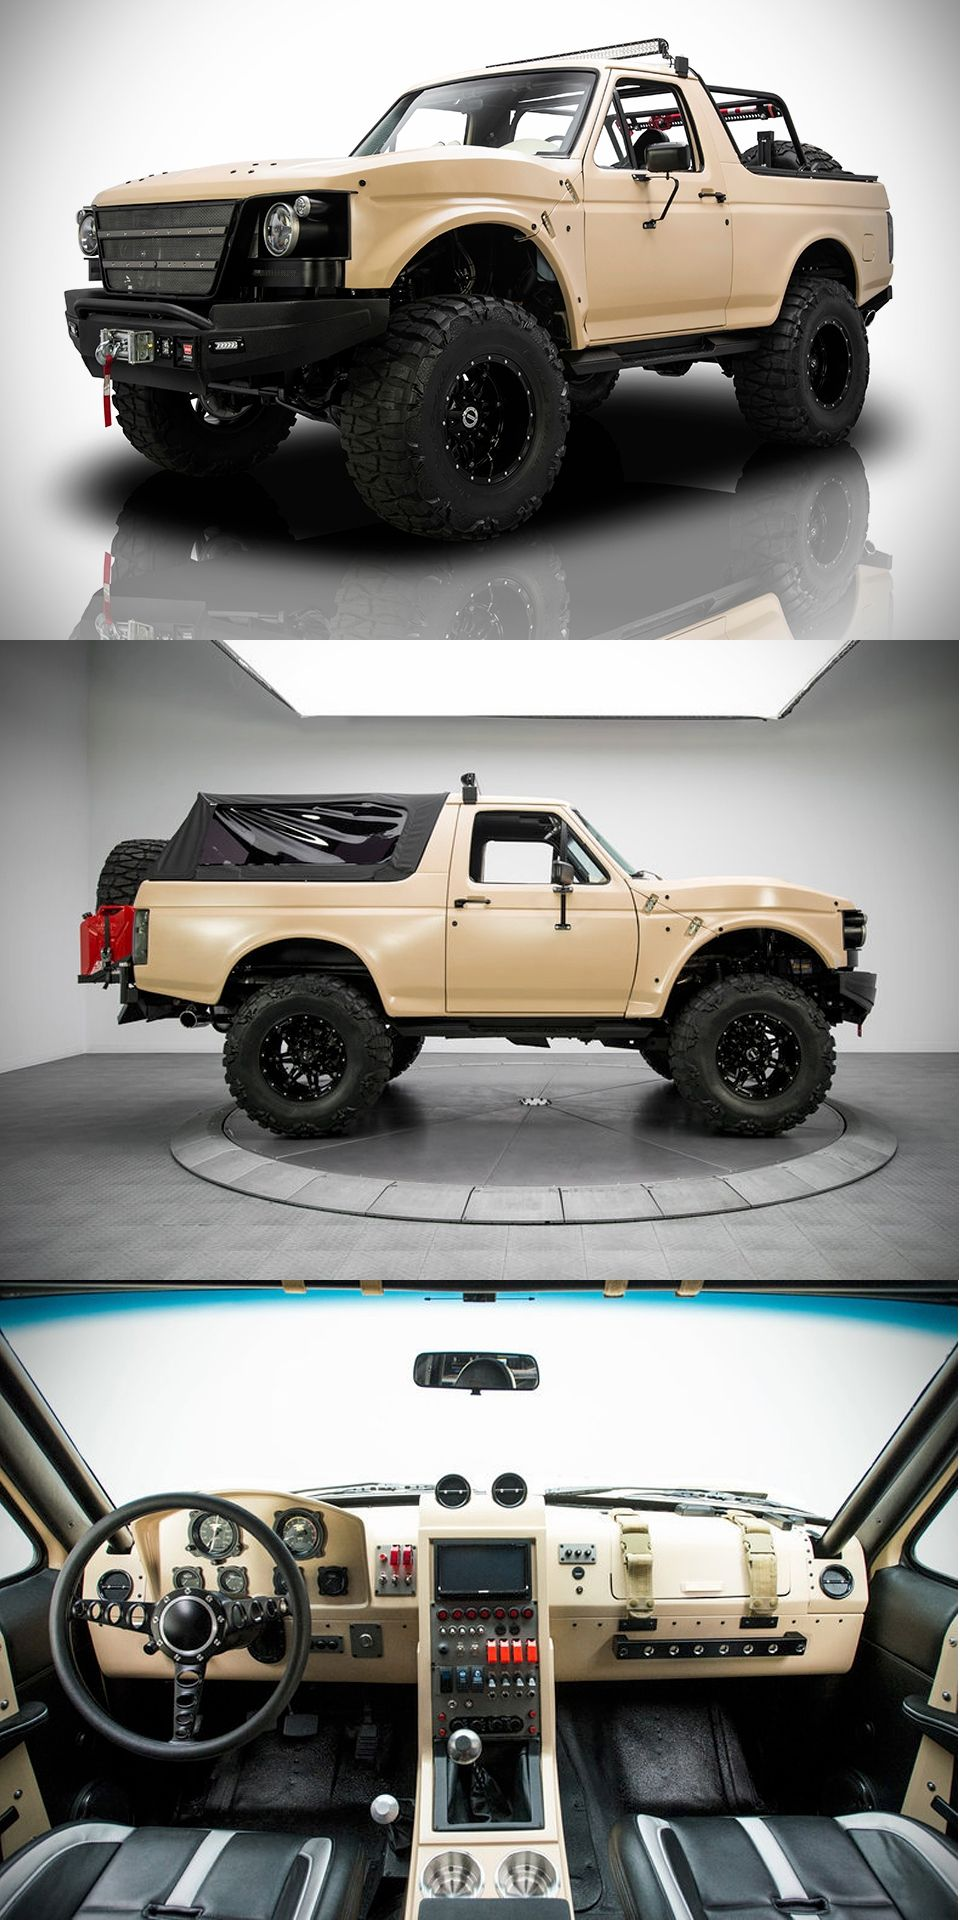 1991 Ford Bronco Project Fearless Custom Automobile Inside Looks Like A Cockpit Nice Customization American Cars And Trucks Diy 1996 Bronco Ford Bronco Trucks Cars Motorcycles Cat